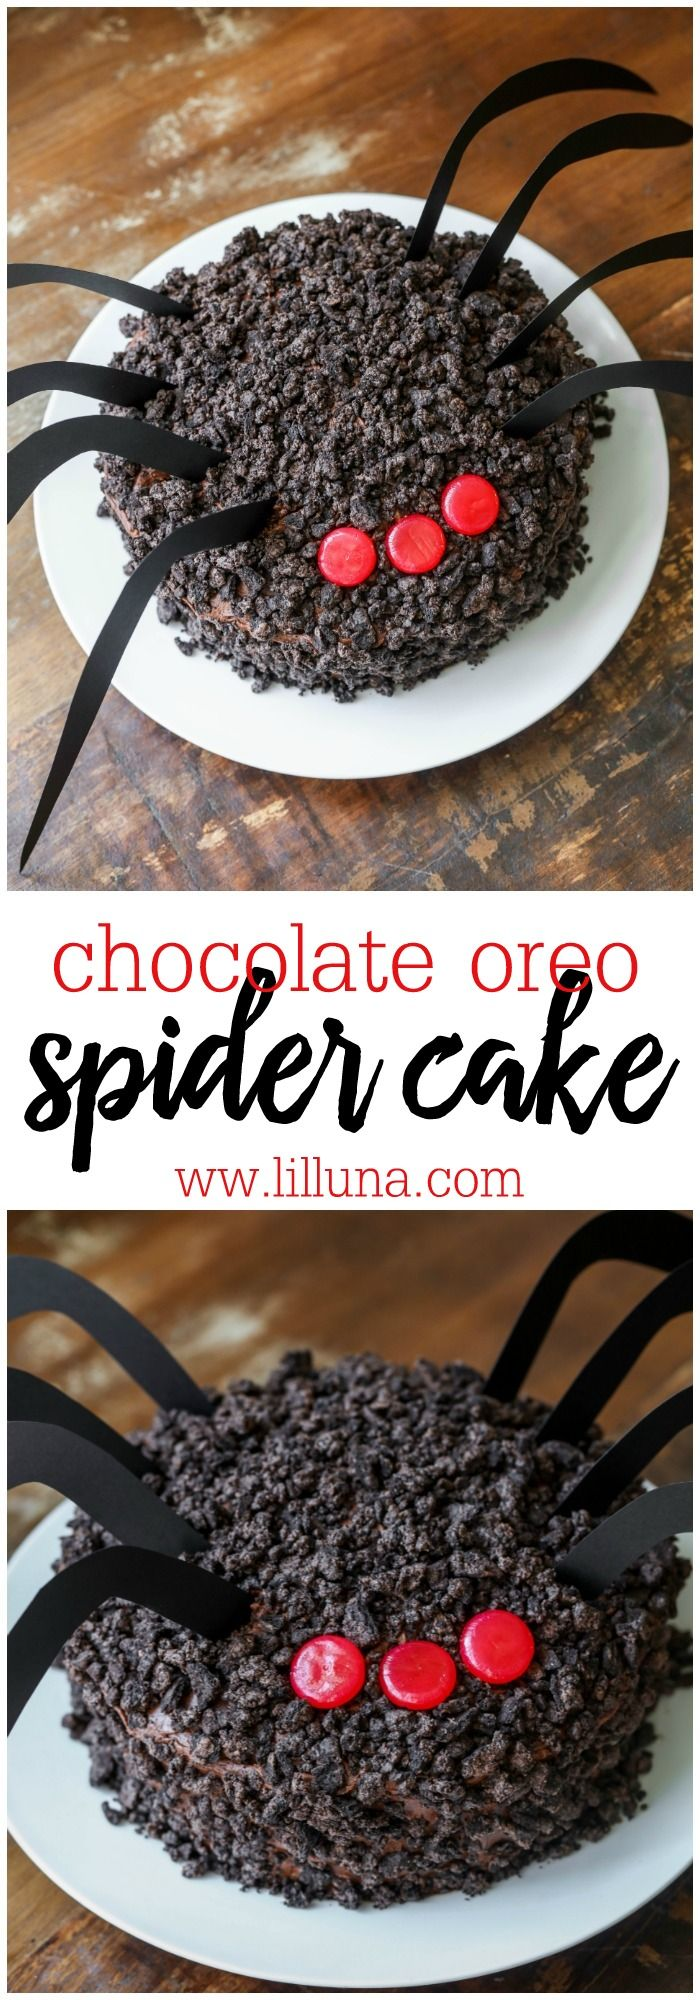 Chocolate Oreo Spider Cake - a delicious chocolate cake topped with homemade chocolate buttercream frosting and Oreos with cinnamon eyes and legs - perfect for a creepy Halloween dessert!